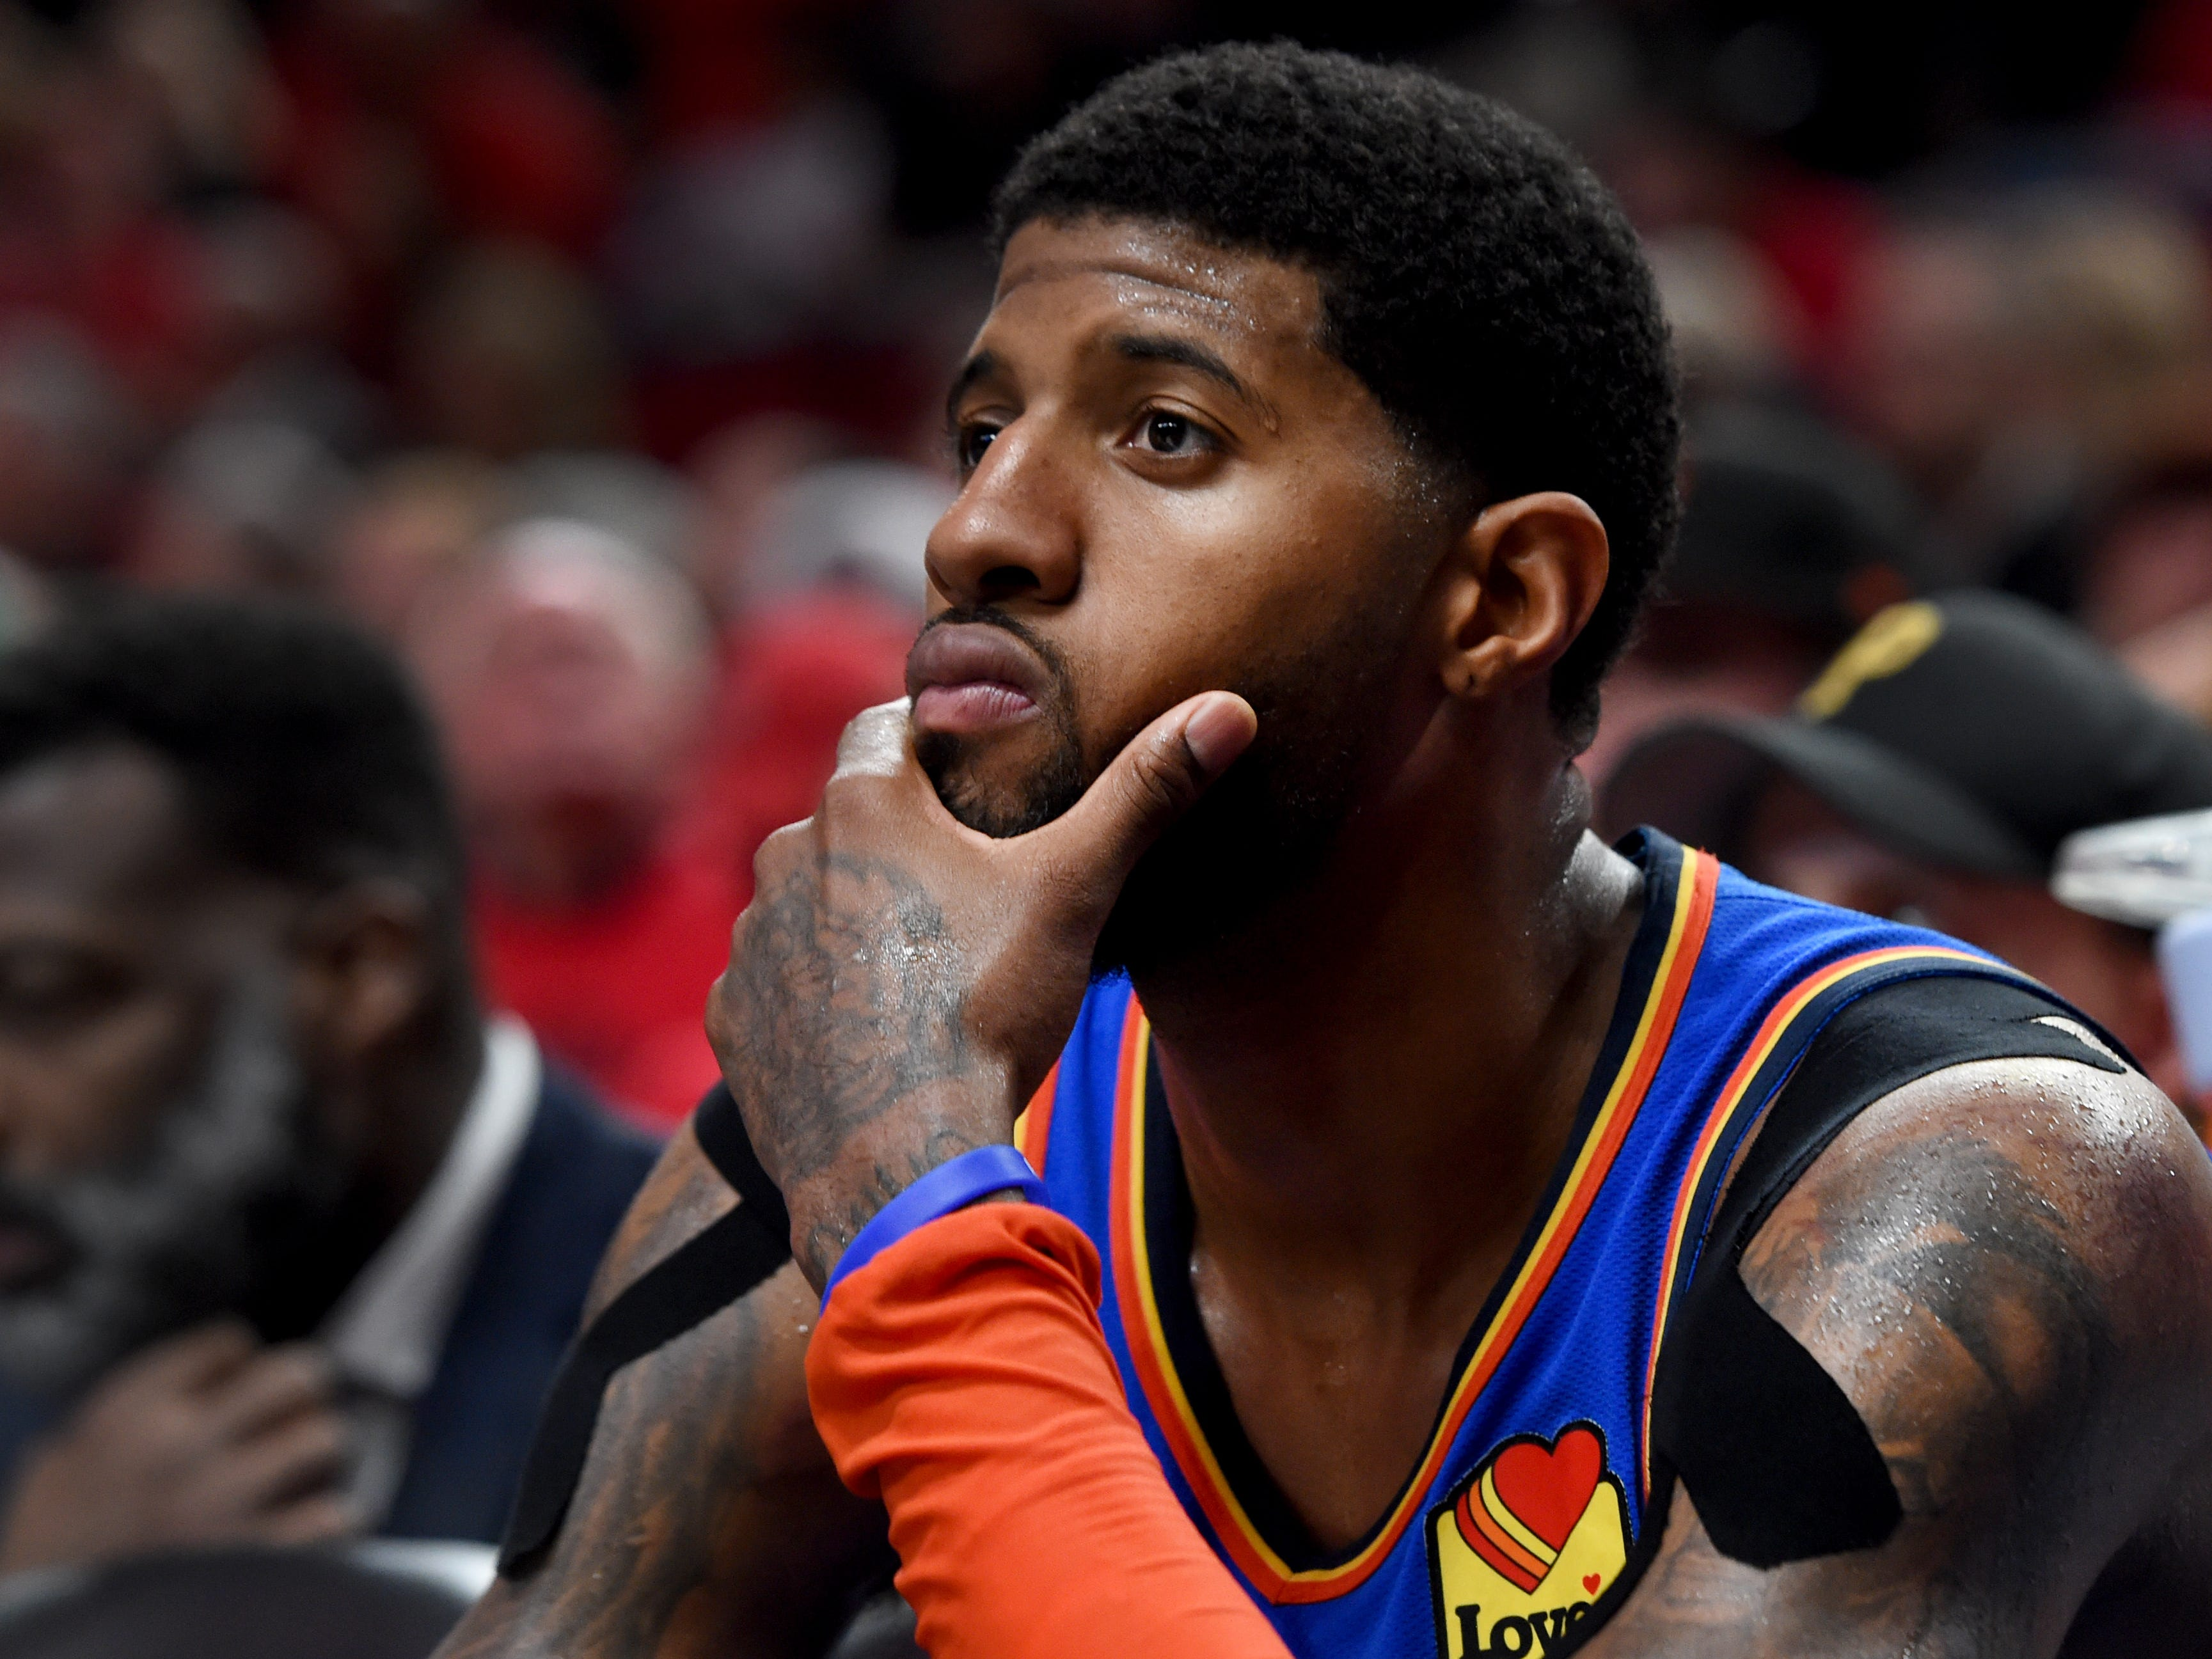 April 16: Paul George watches from the bench as time winds down during the Thunder's Game 2 loss to the Trail Blazers.